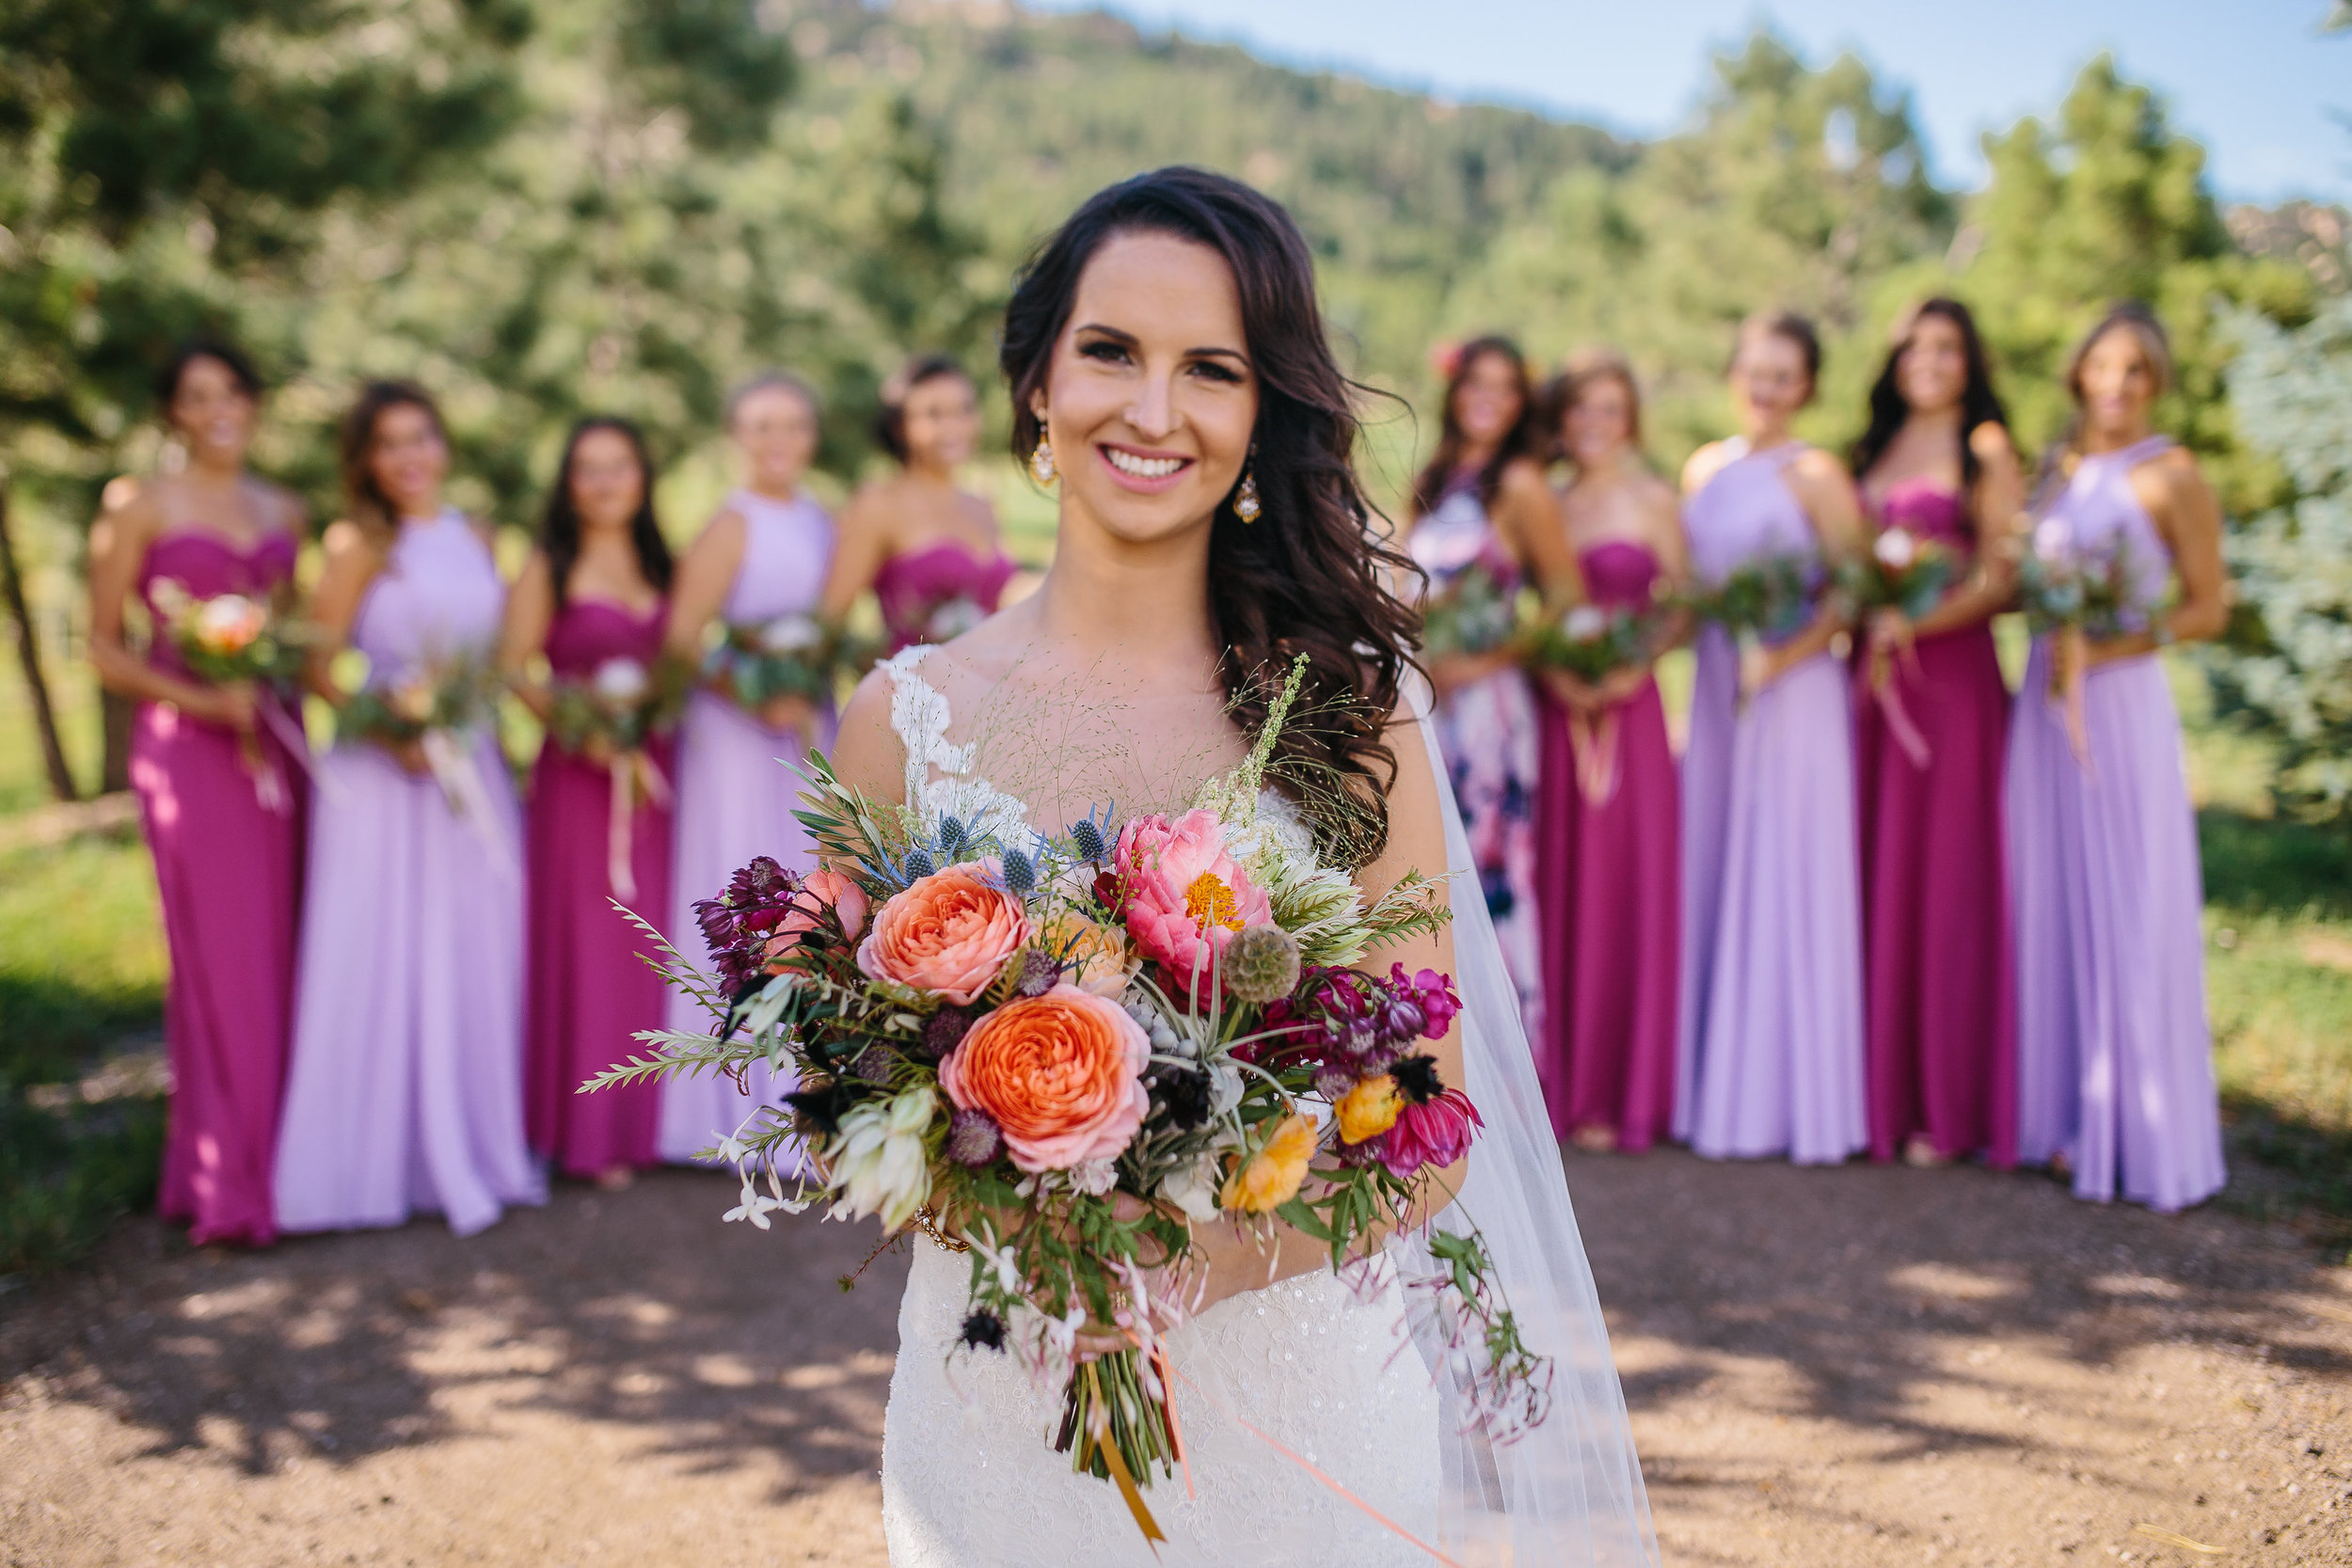 Flowers by Lace and Lilies - Bridal bouquet, hair flowers, flower crown, floral halo, bride, maid of honor, pink, blush, purple, blue, thistle, colorful, vibrant, summer wedding, colorado, peony, blushing bride, garden rose, air plant, bridesmaids, protea, spruce mountain ranch